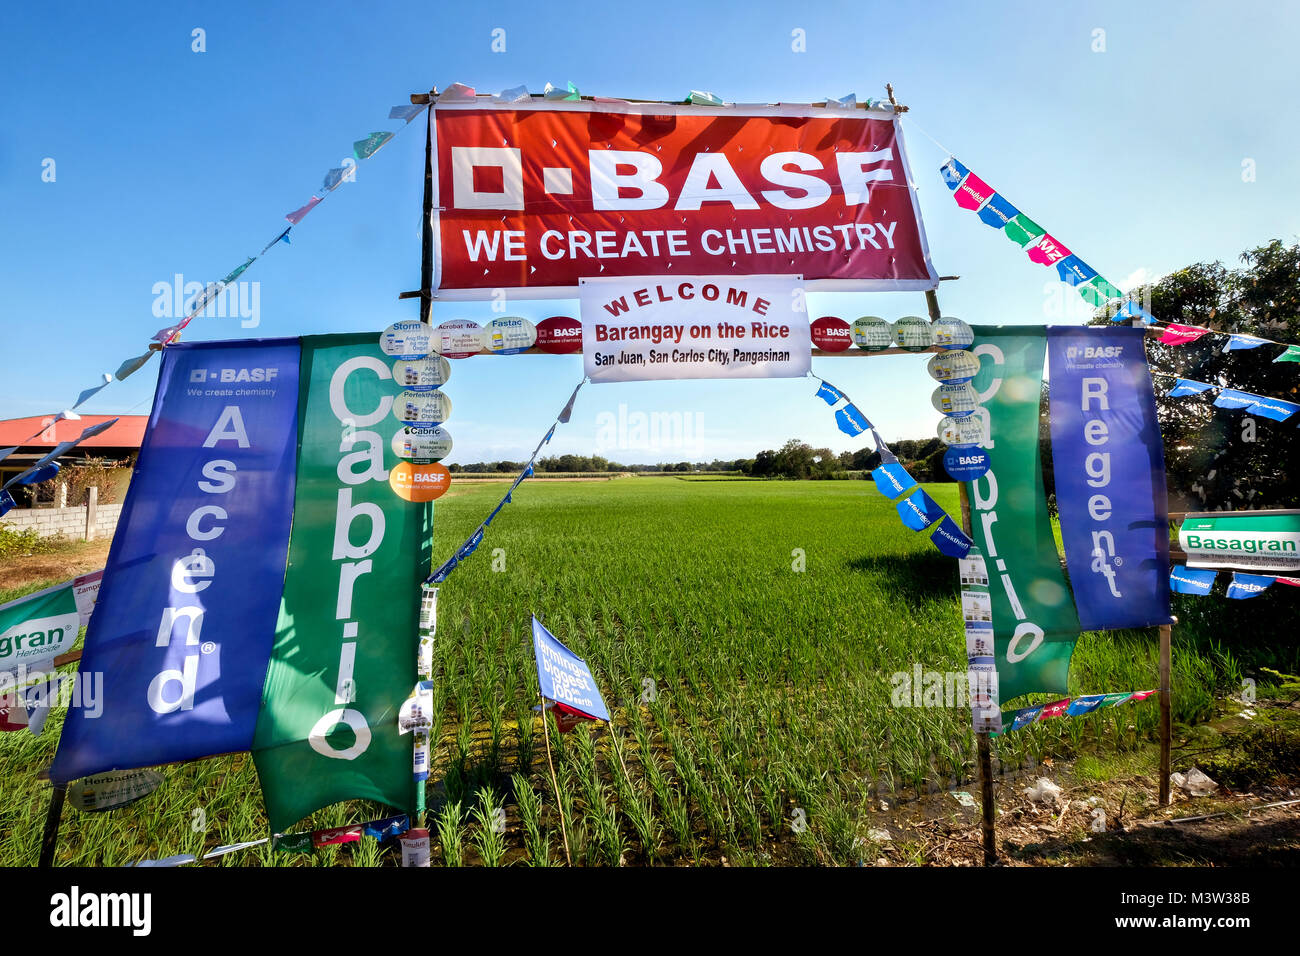 Flags of the chemical company BASF in a rice field in the Philippines (Pangasinan province) advertise for the chemical - Stock Image